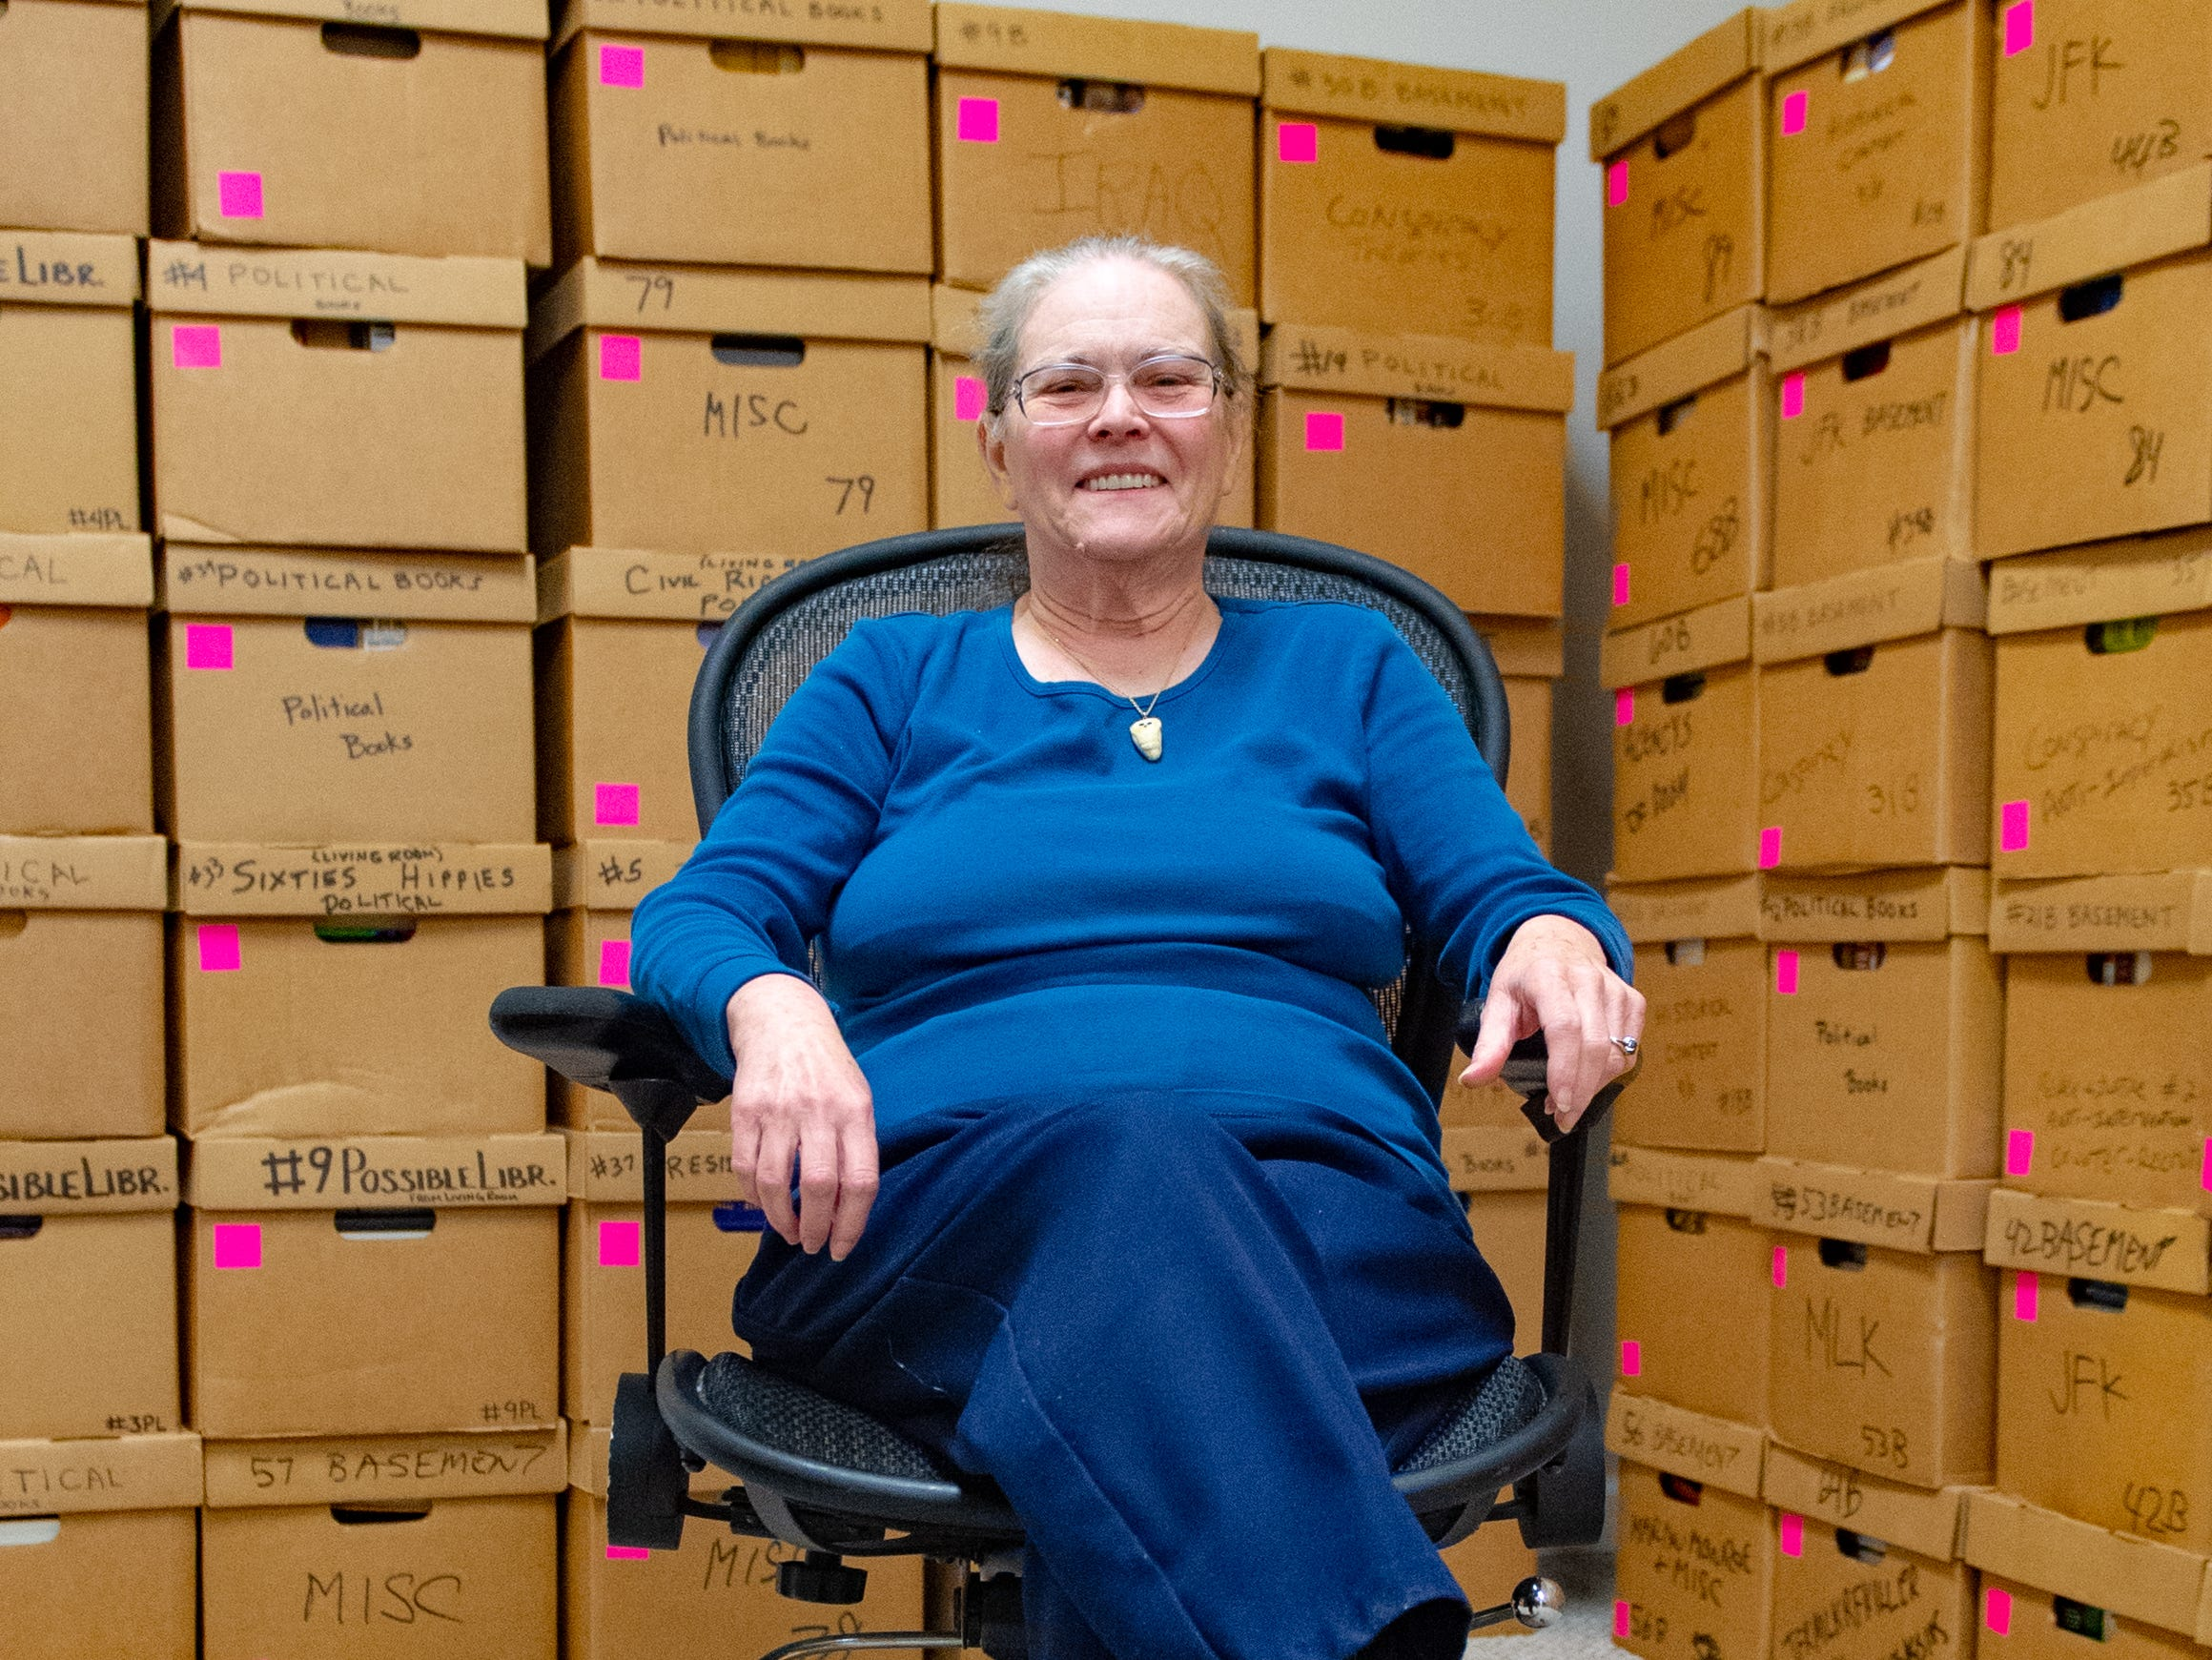 After John Judge's death, Marilyn Tenenoff was given all of her companion's massive collection of books and papers. She decided to move the Hidden History Museum and Research Center from Washington D.C. to York, Pennsylvania.